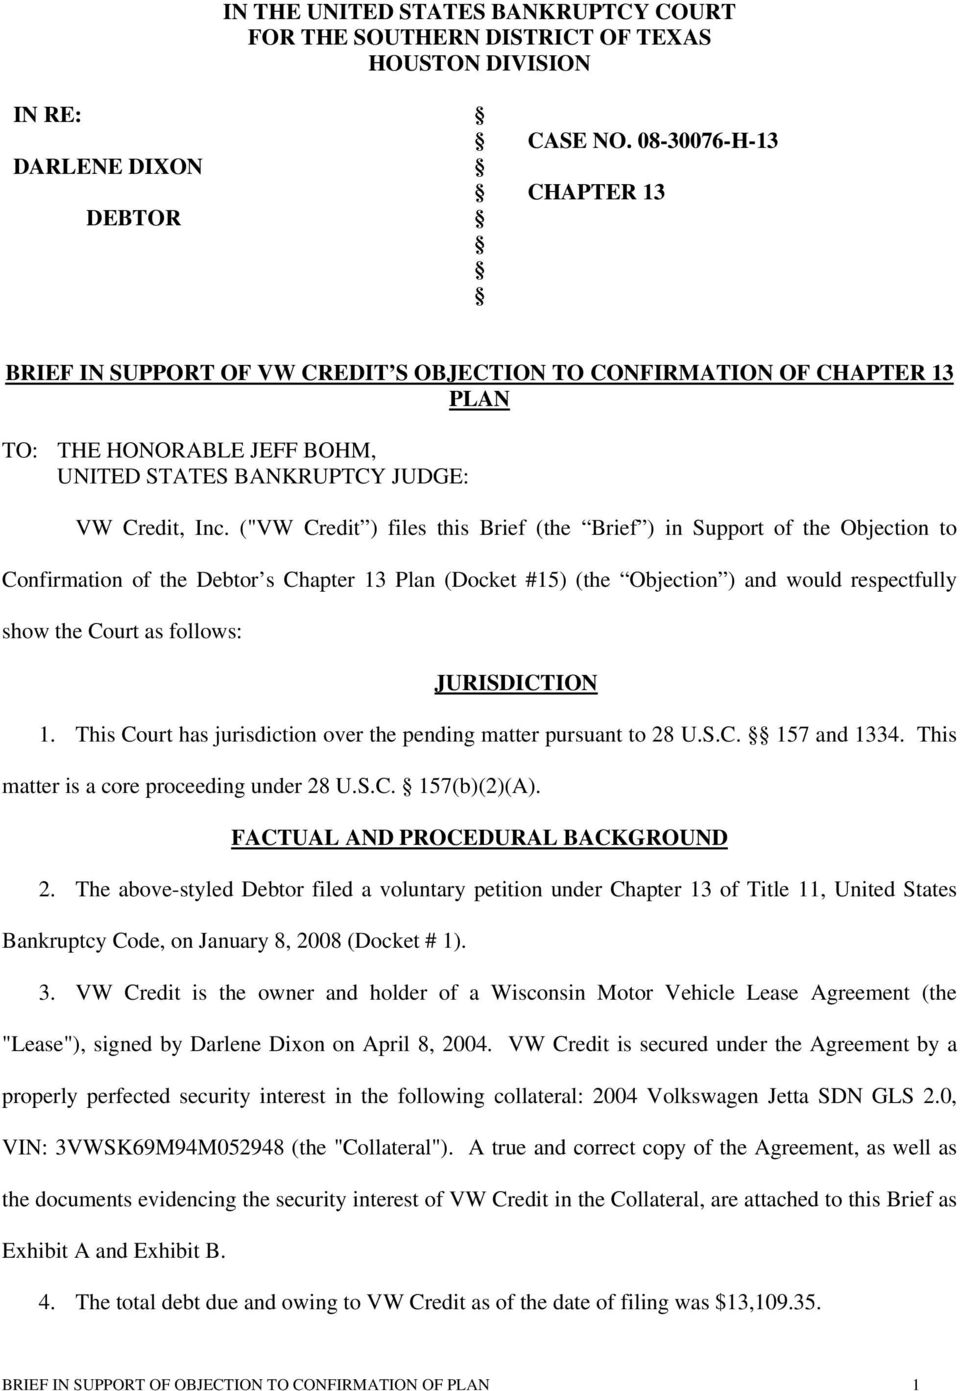 In The United States Bankruptcy Court For The Southern District Of